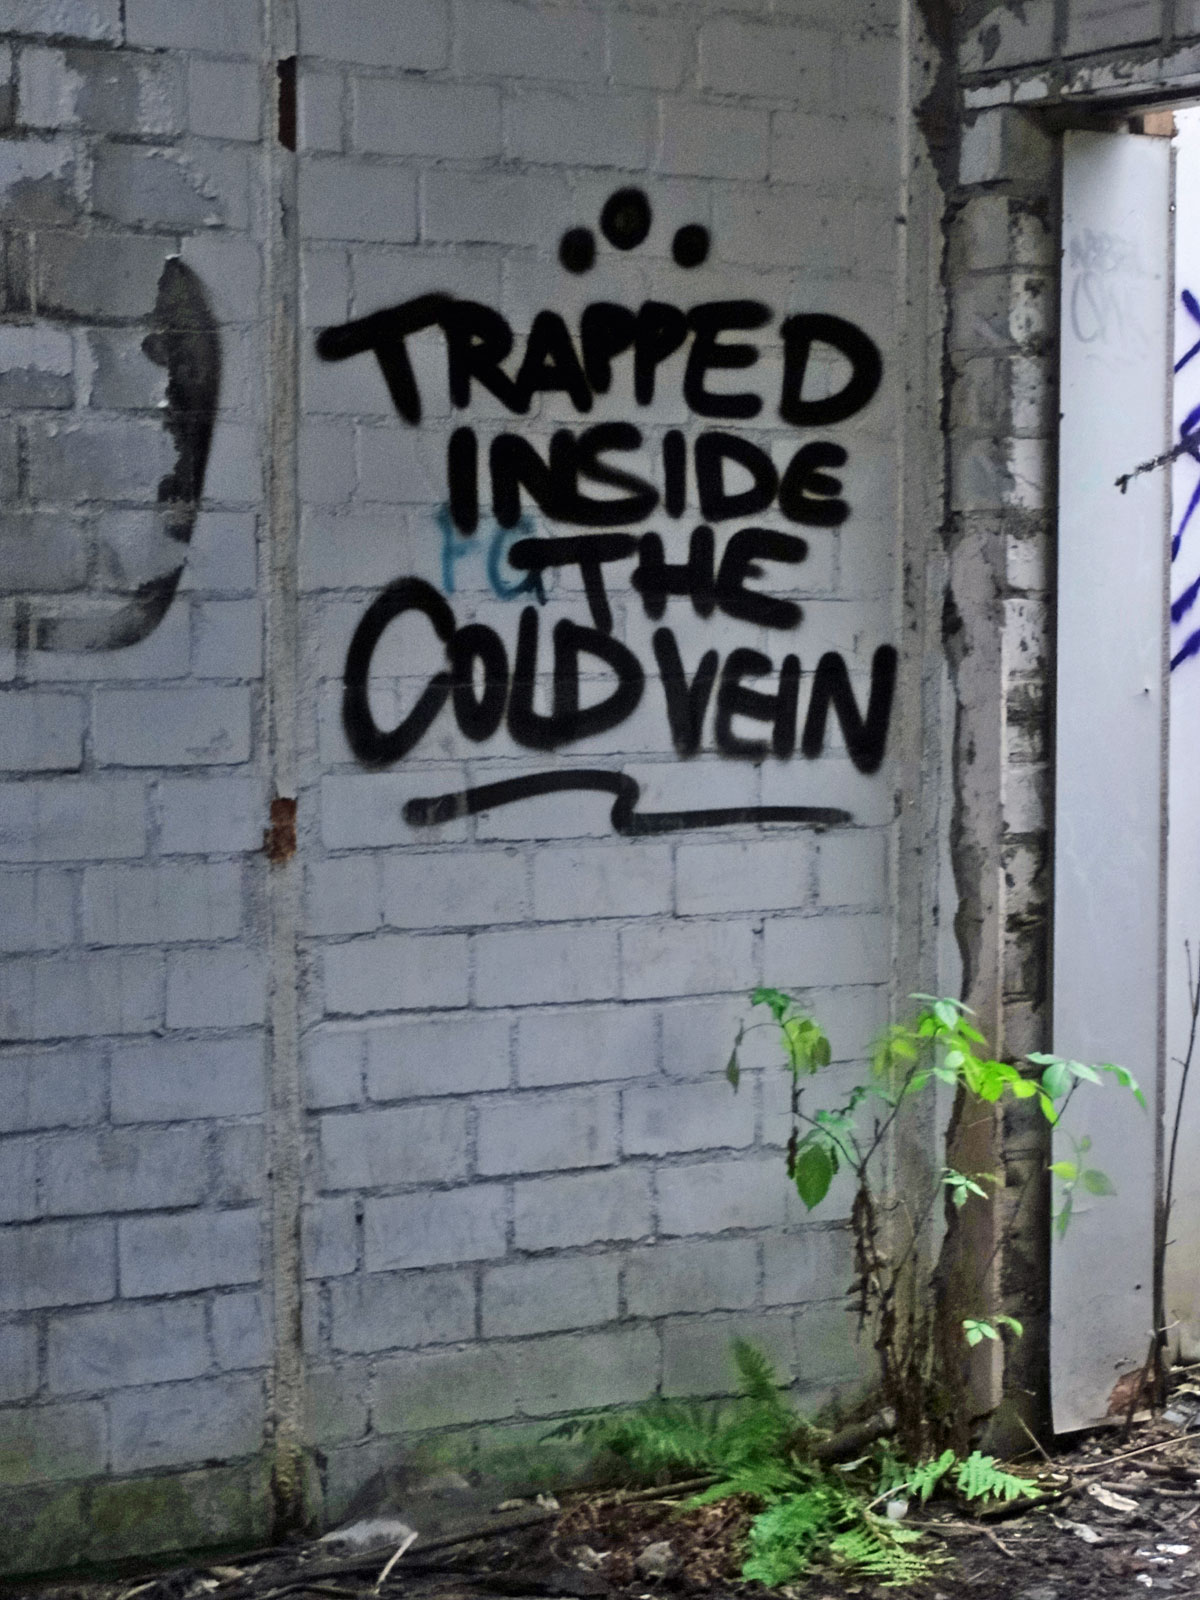 Trapped inside the cold vein - Graffiti in den Teves Werken